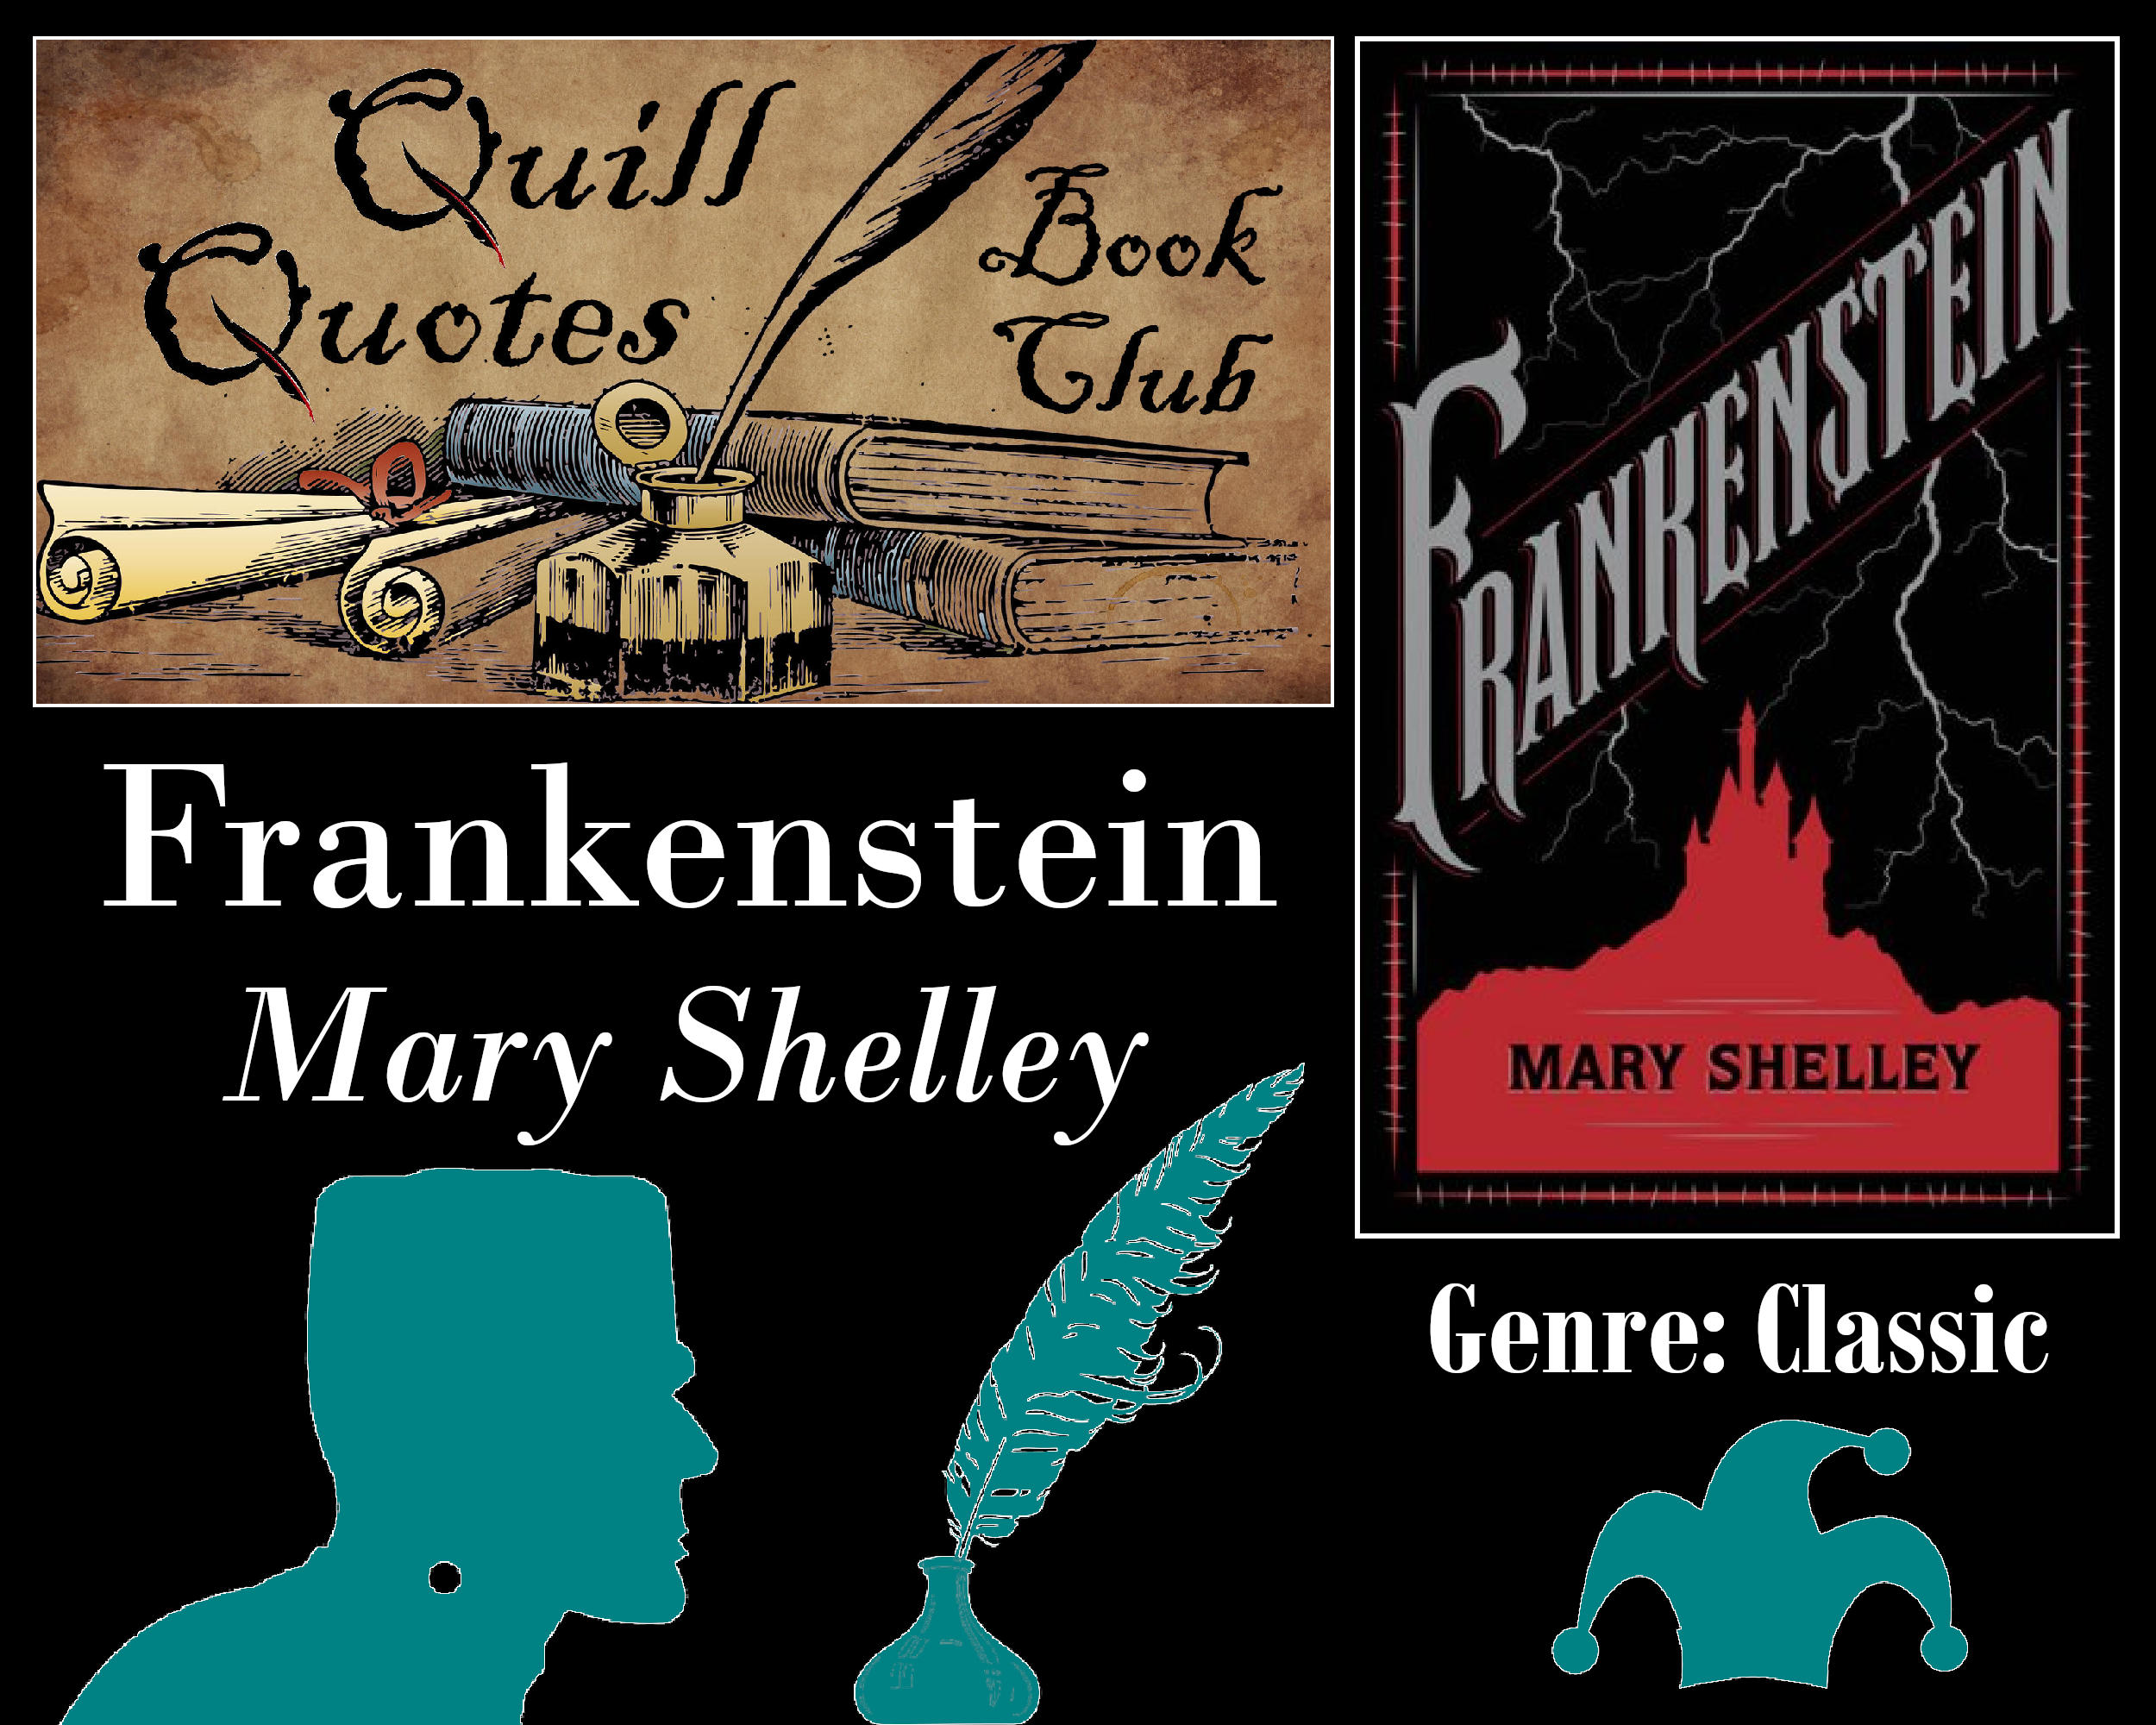 Frankenstein Book Club Final Discussion Quill Quotes